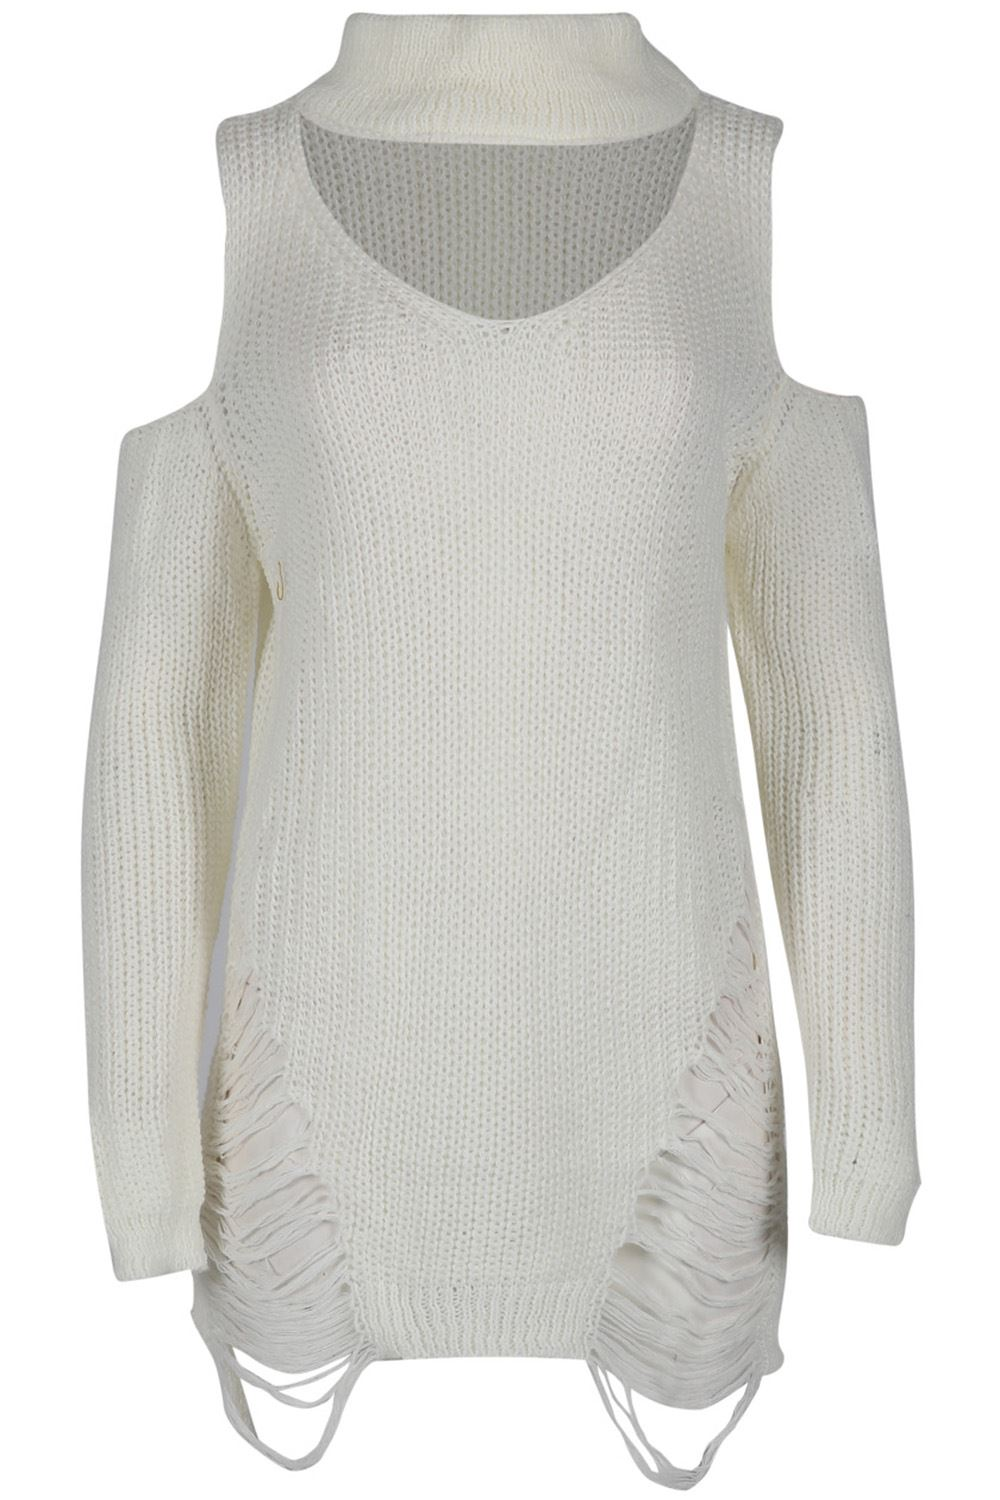 Ladies Chunky Knit Womens Cold Shoulder Choker Keyhole Neck Destroyed Mini Dress